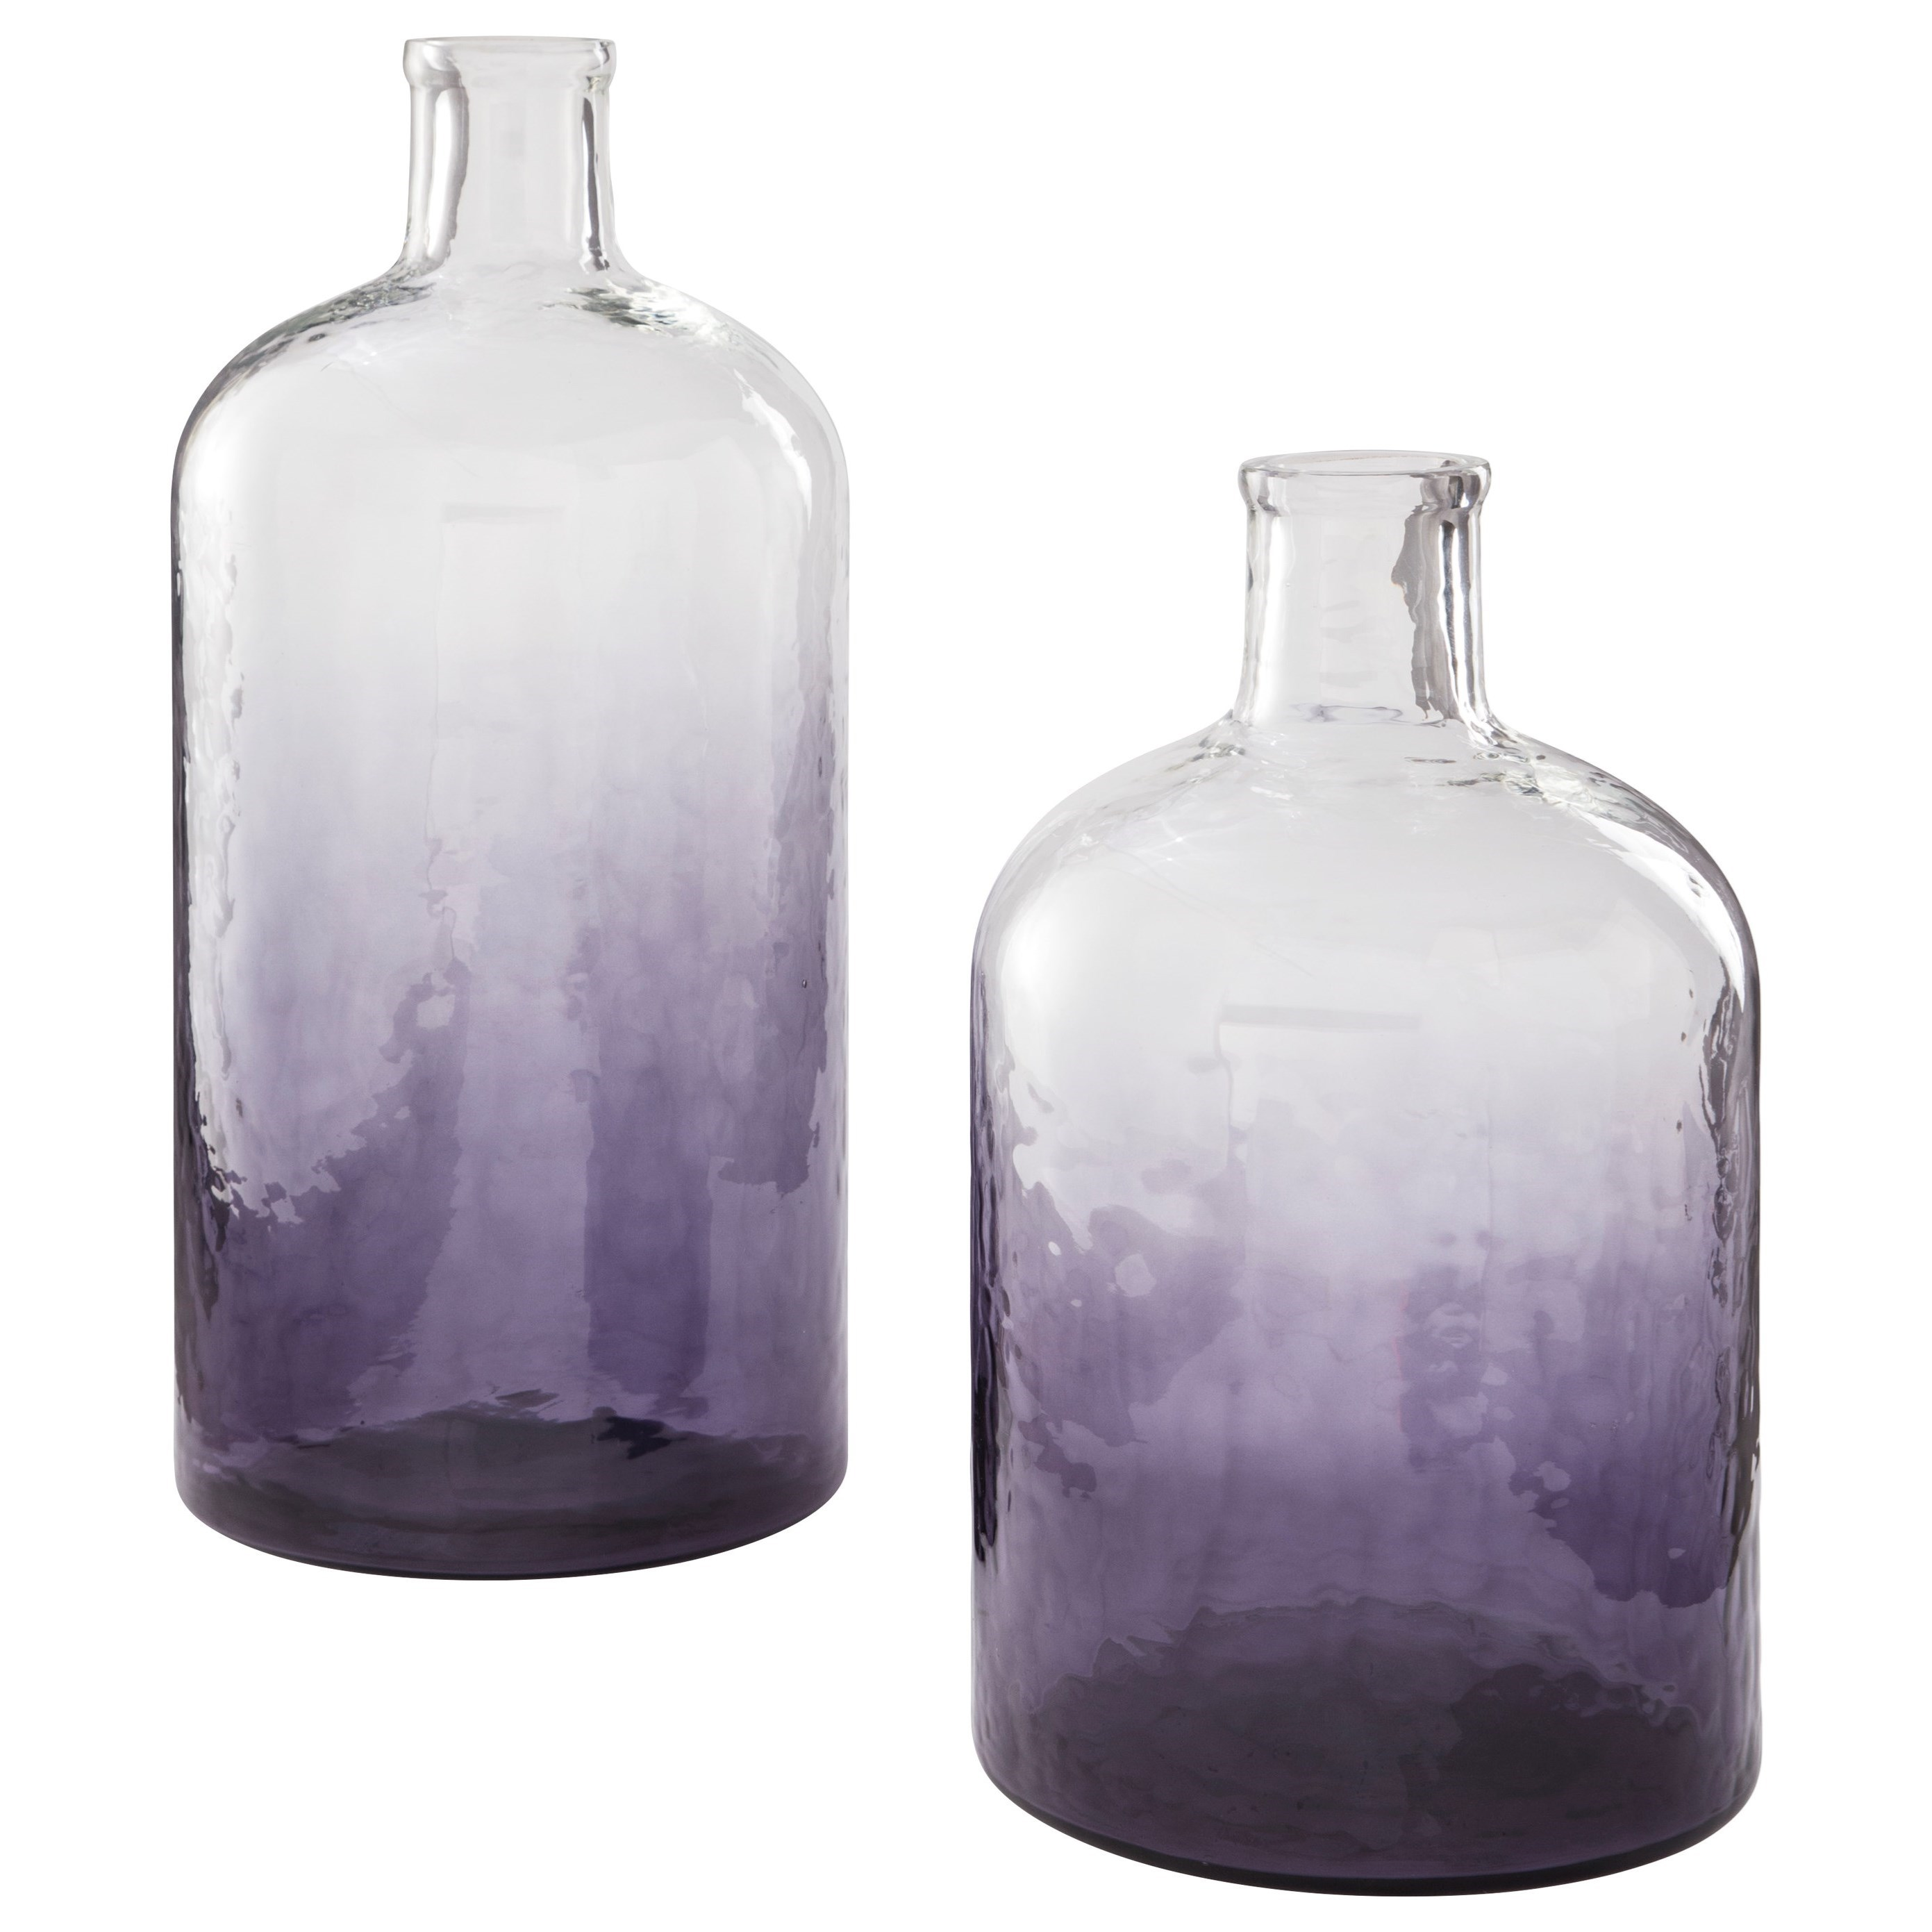 Accents Maleah Purple Glass Vase Set by Signature Design by Ashley at Zak's Warehouse Clearance Center